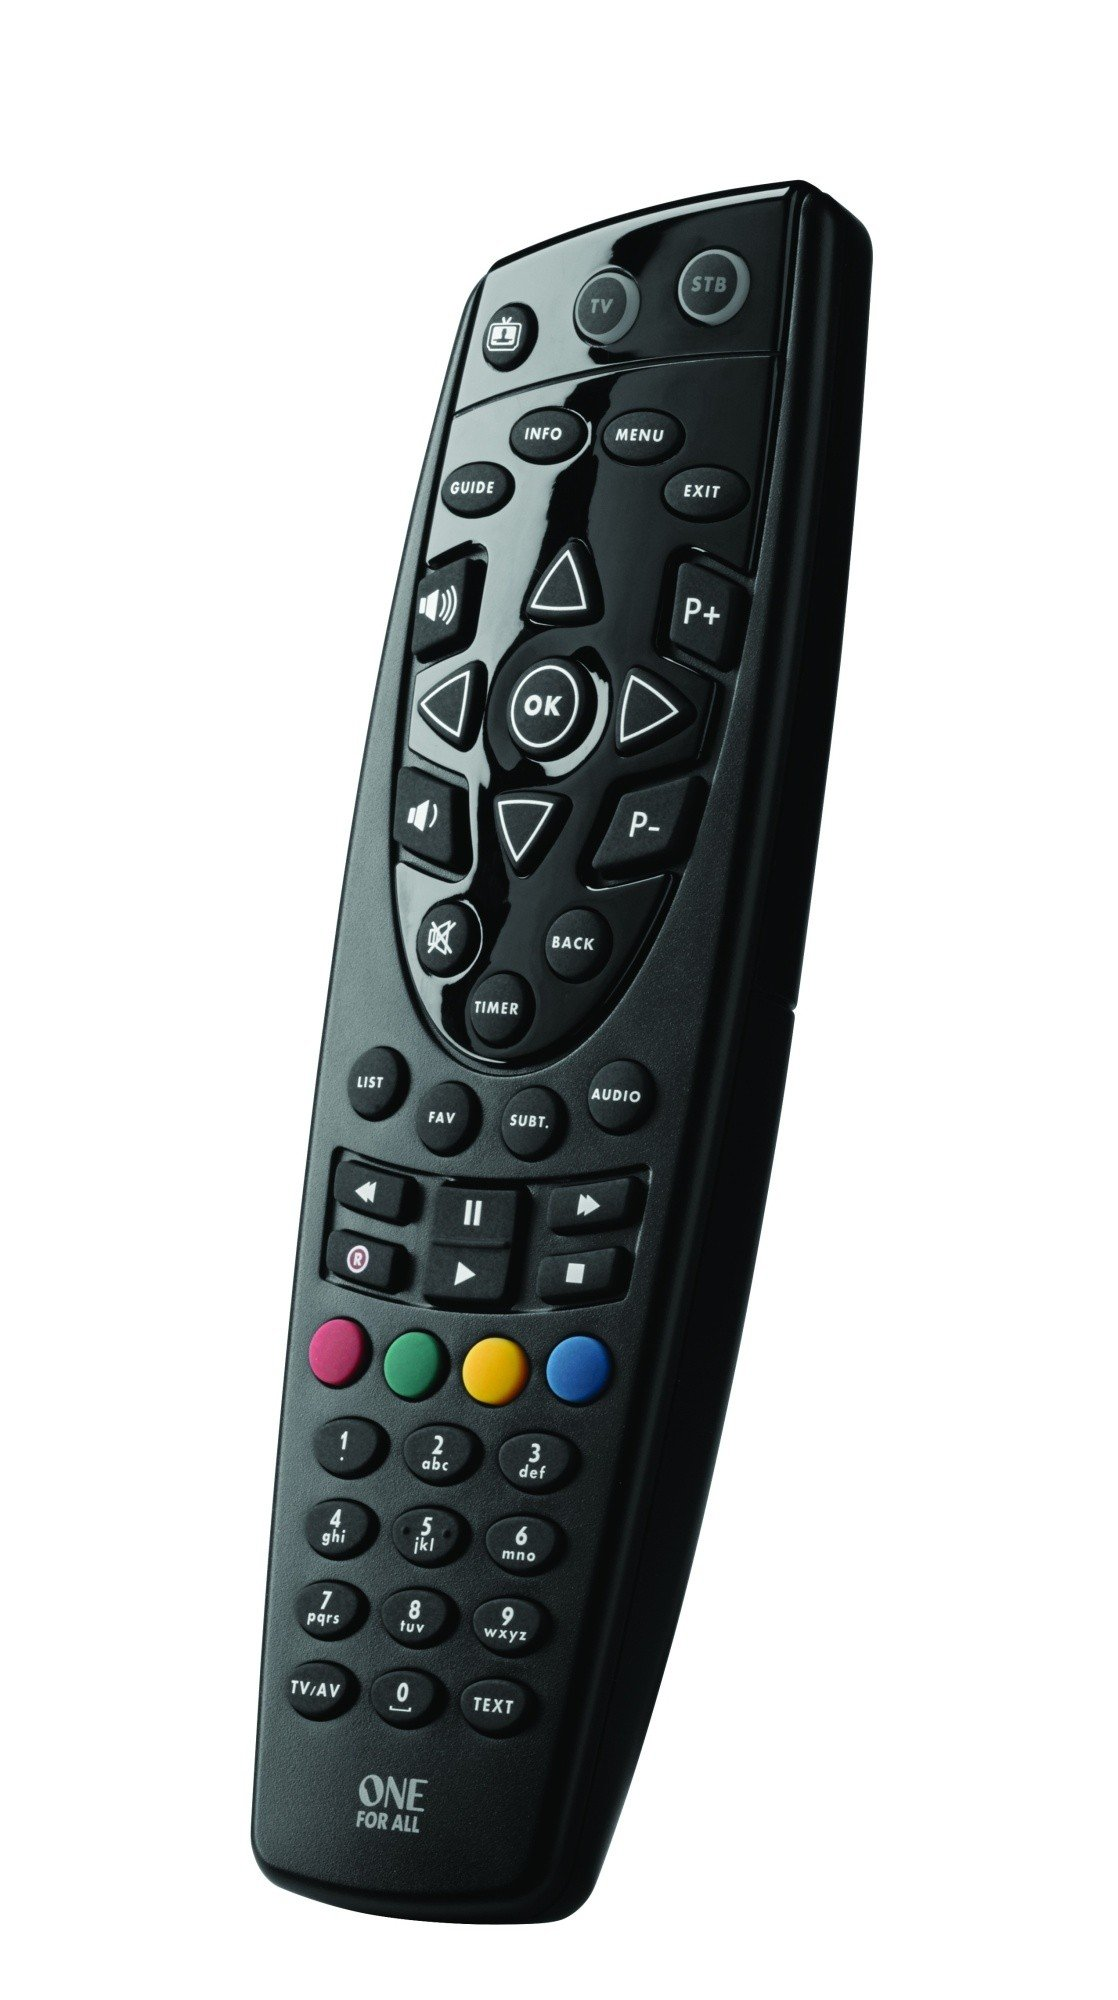 One For All URC1666 Remote Control for TV's/Cable/Satellite Boxes/SKY+ HD - Black